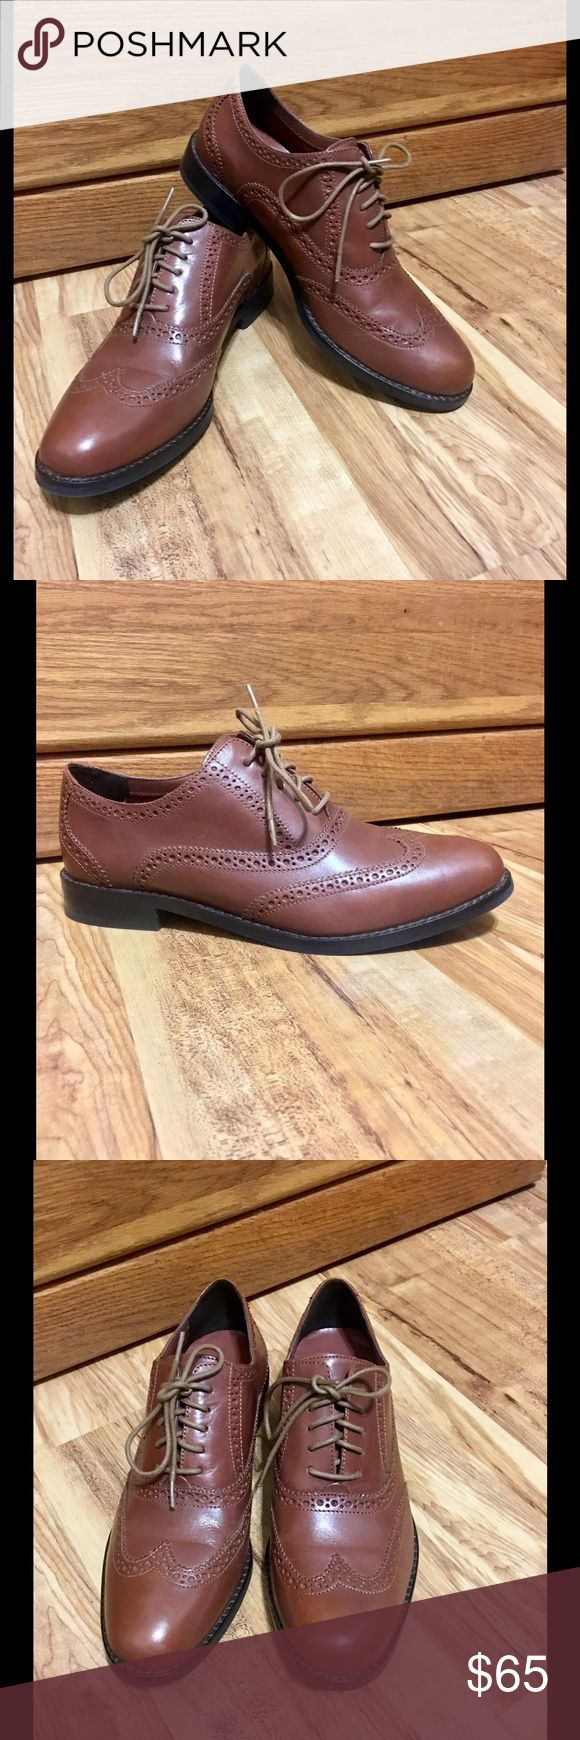 Cole Haan Shoe's Cole Haan Women's Brown Leather Wingtips👞👞Oxford Shoe's 👞👞Size 7 1/2 Medium 🎉🎉👞store display! 👞👞Slightly dusty? Never been worn! Cole Haan Shoes